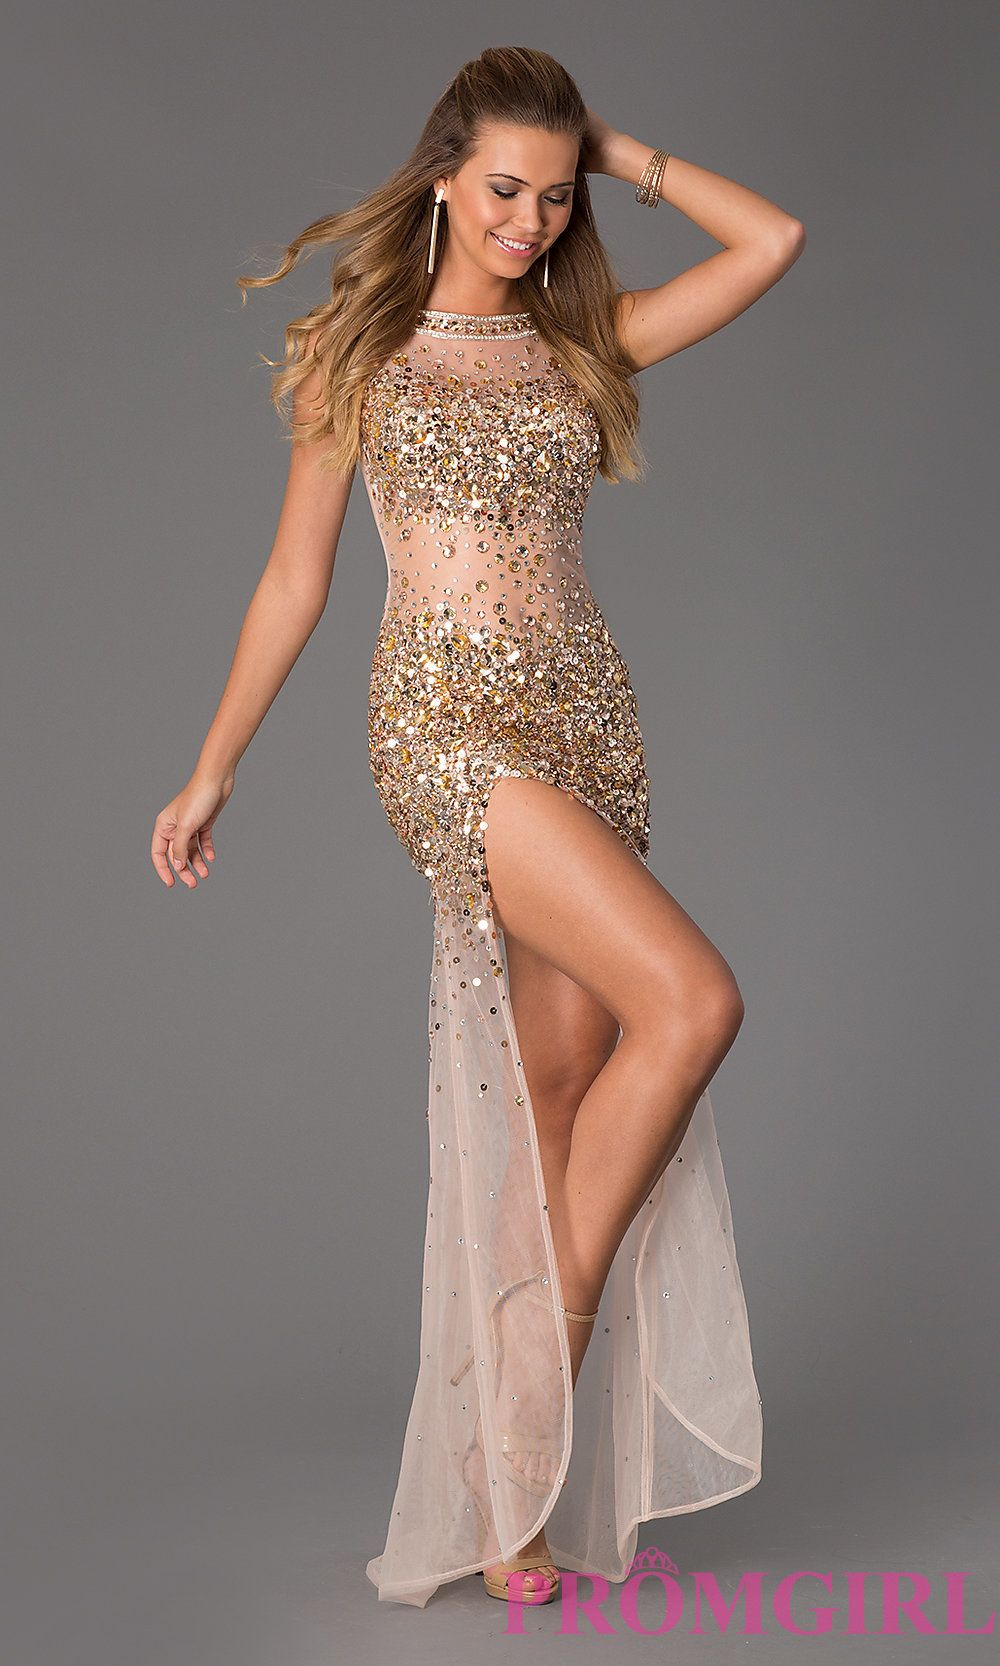 Black and gold dress prom girl